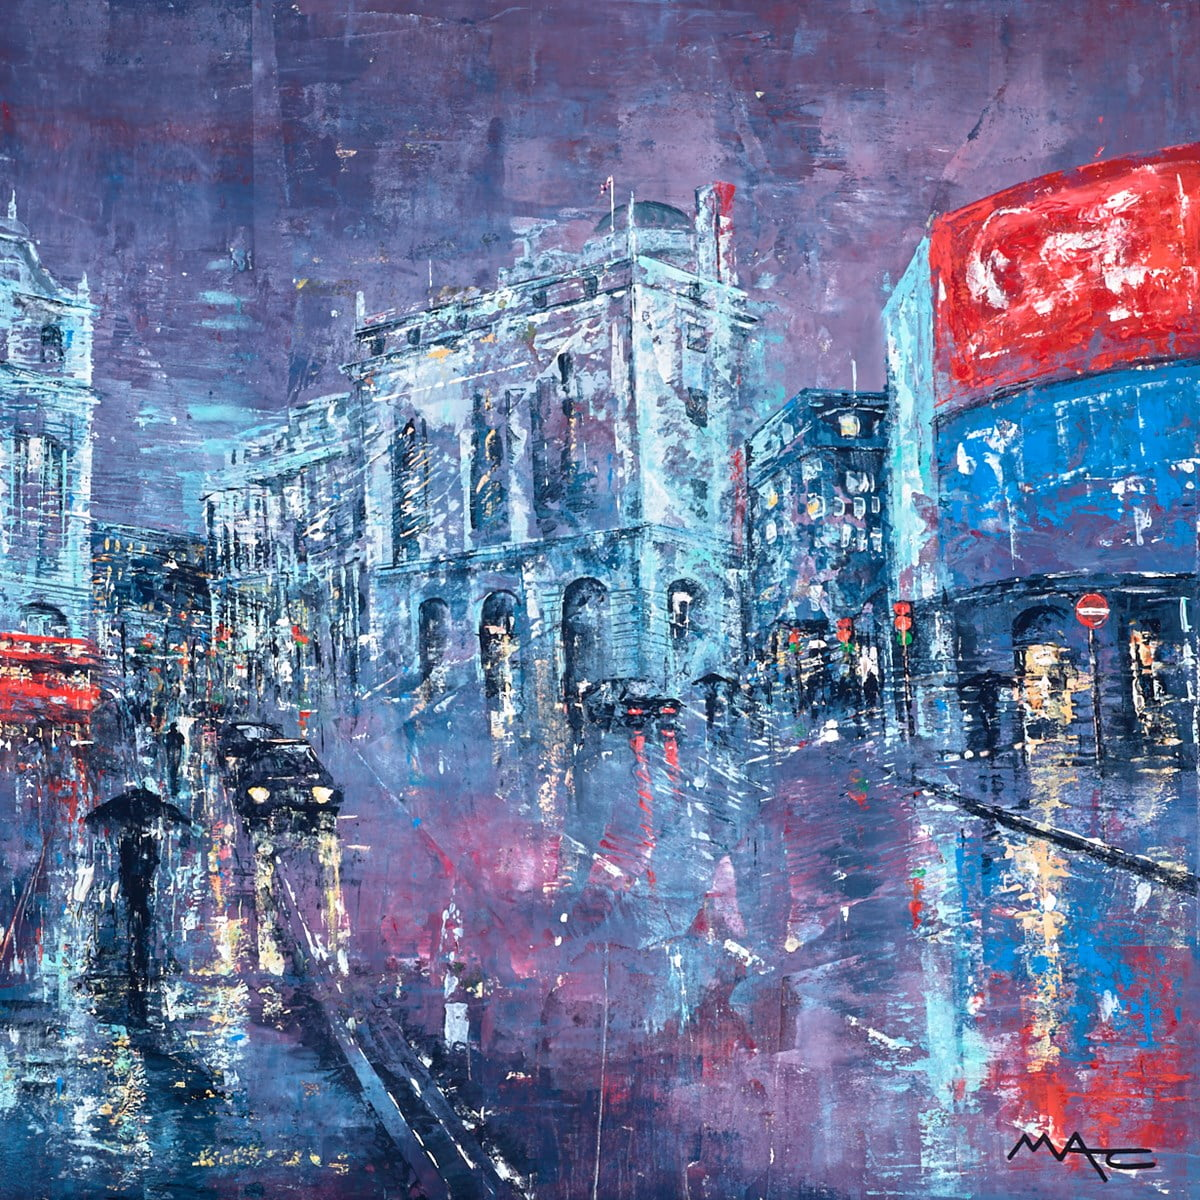 P...P...P...Piccadilly, London ~ Mark Curryer